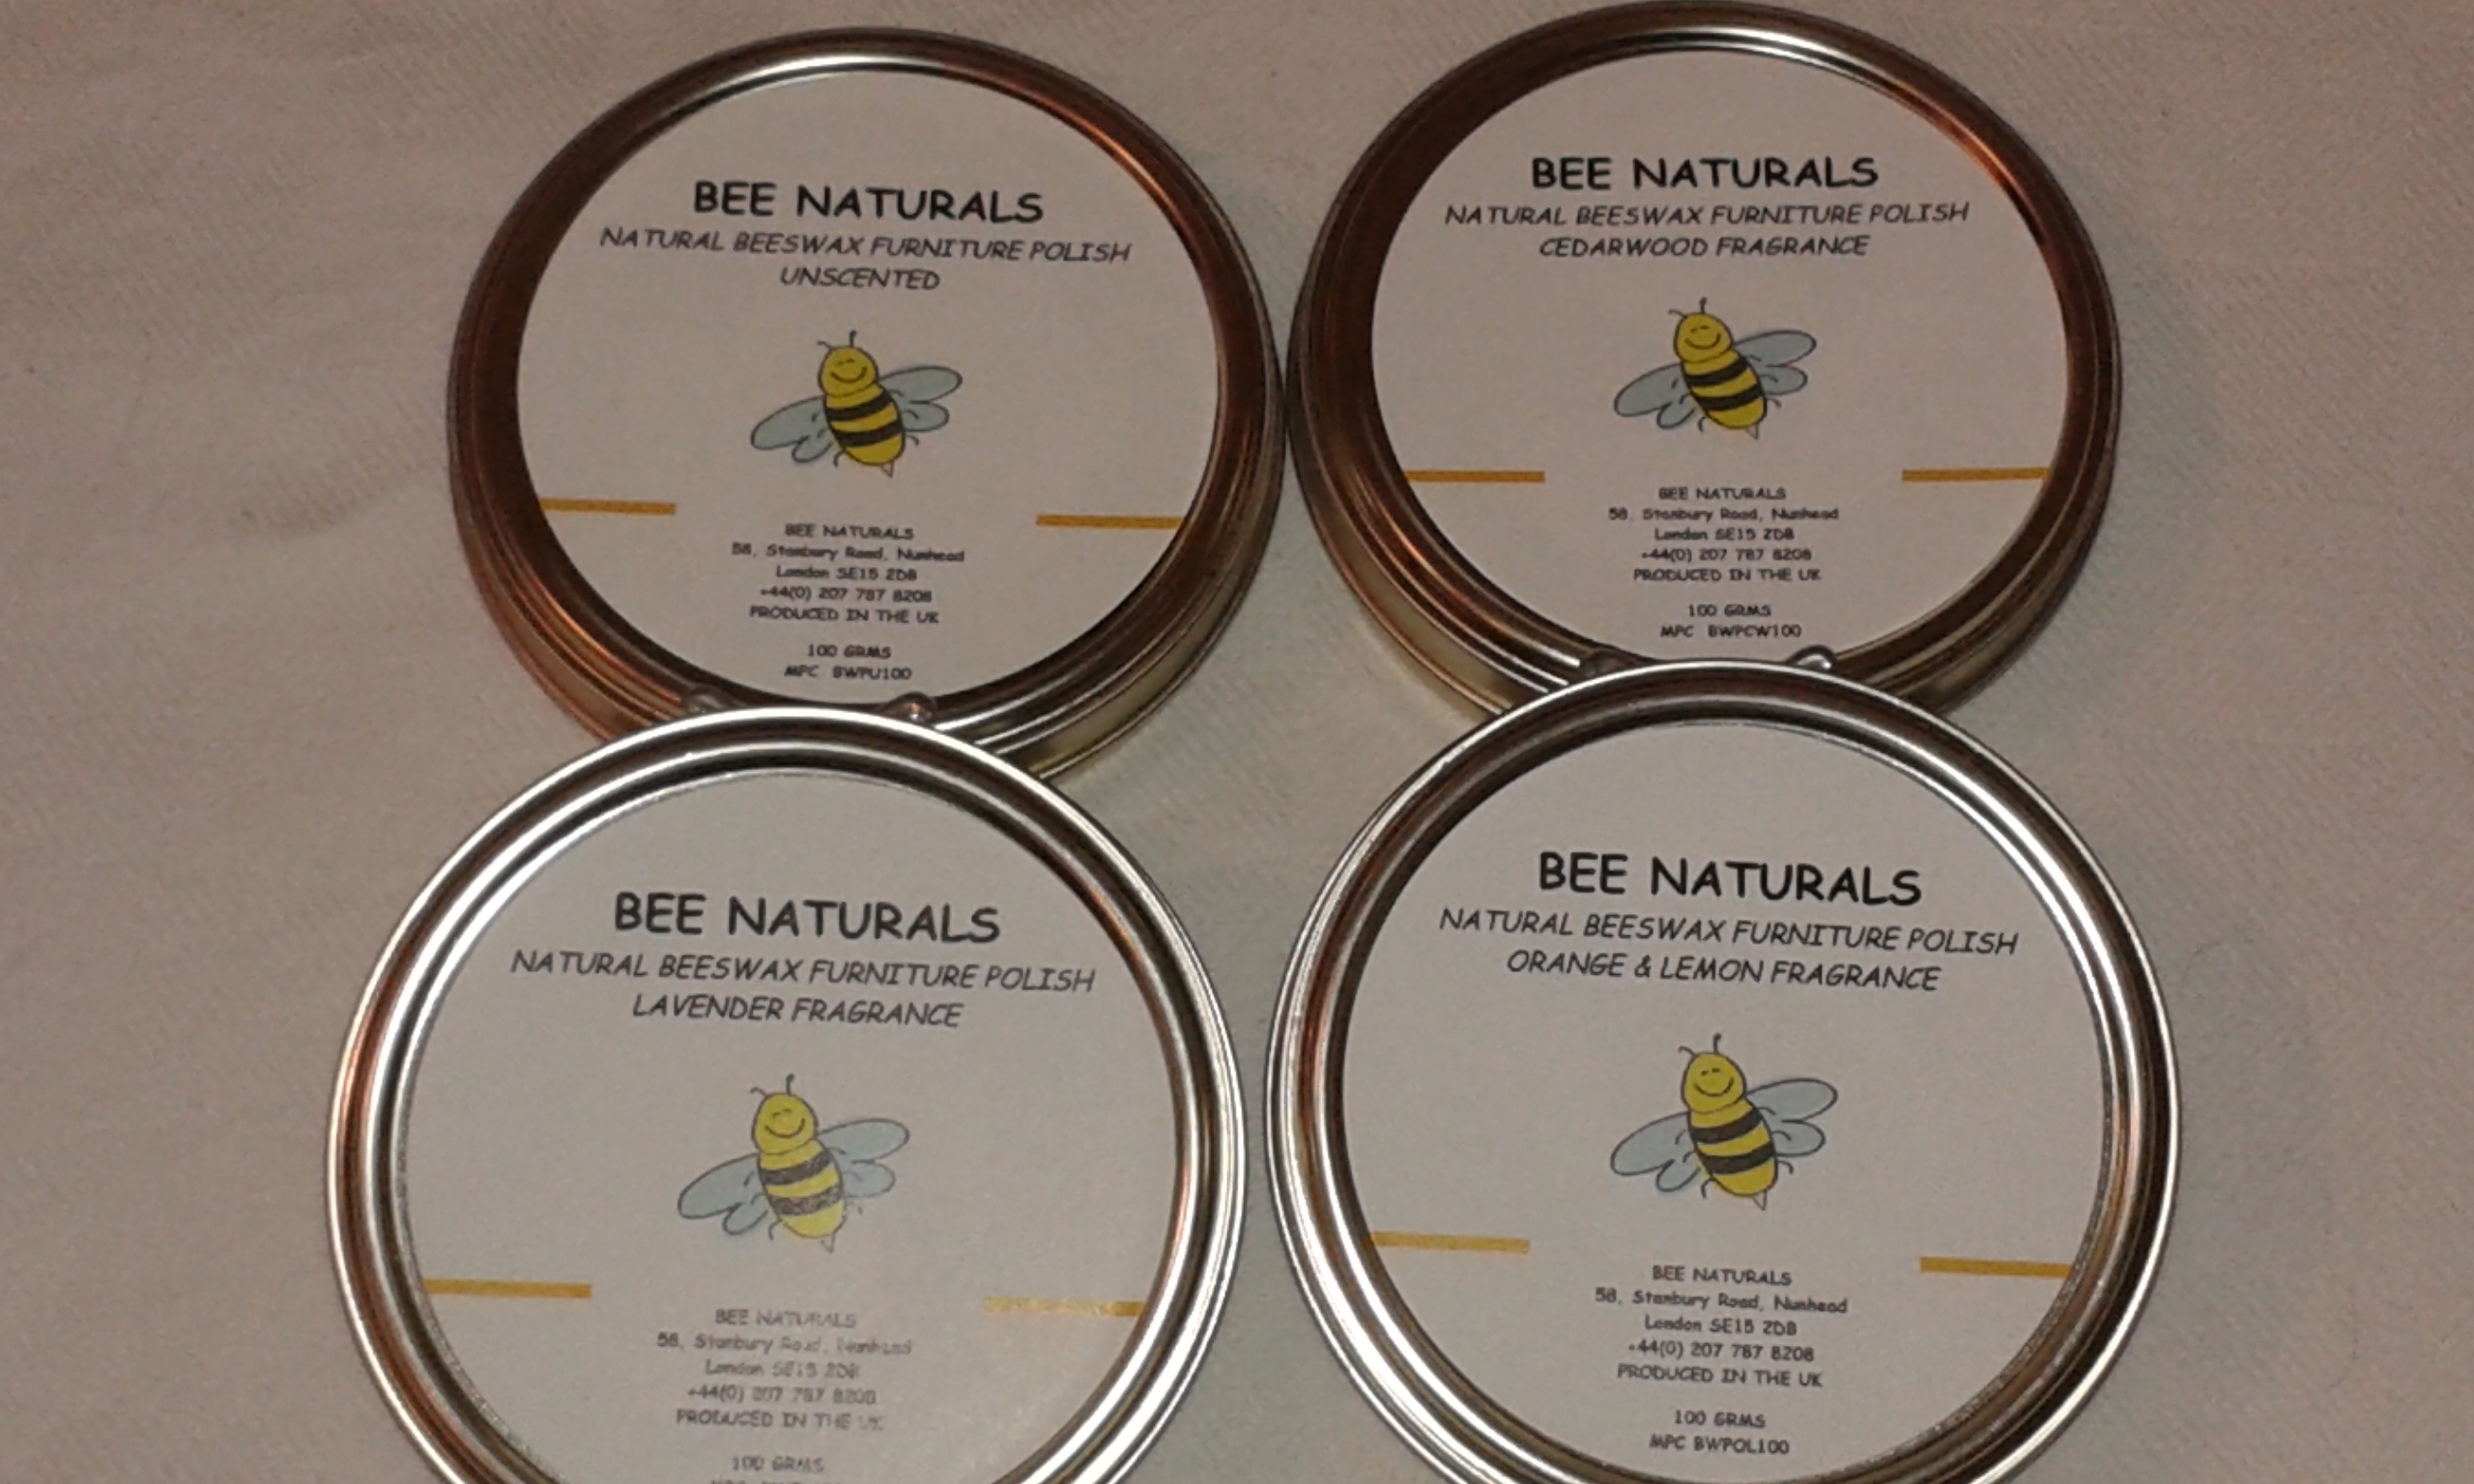 Handmade Beeswax Furniture Polish 100% Natural